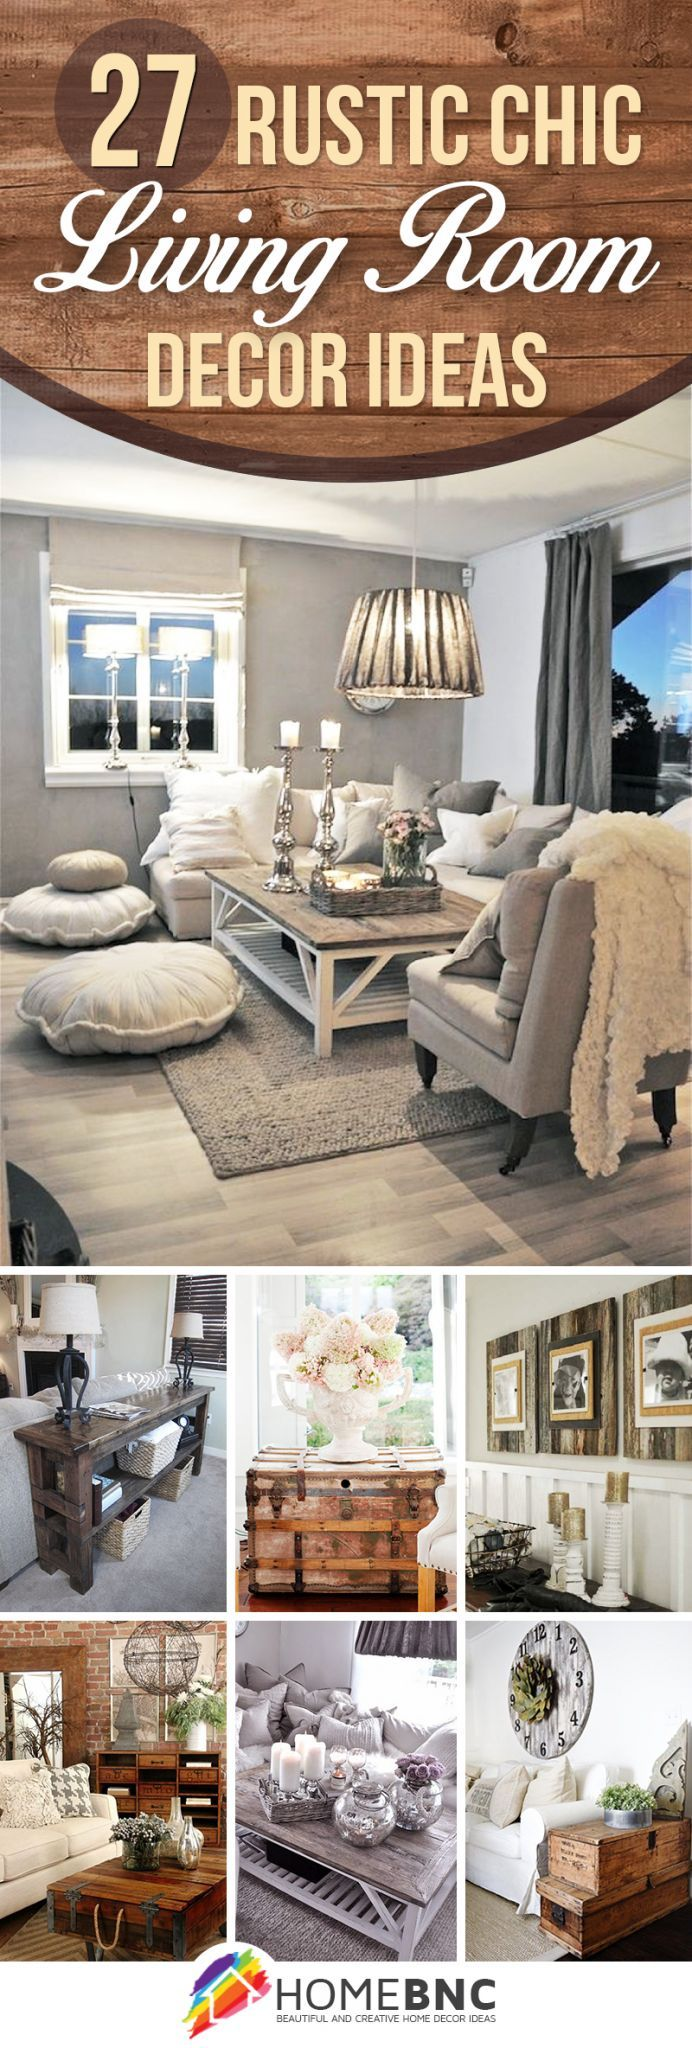 Delectable 30 Diy Living Room Decor Ideas Pinterest Design Decoration Of Bes